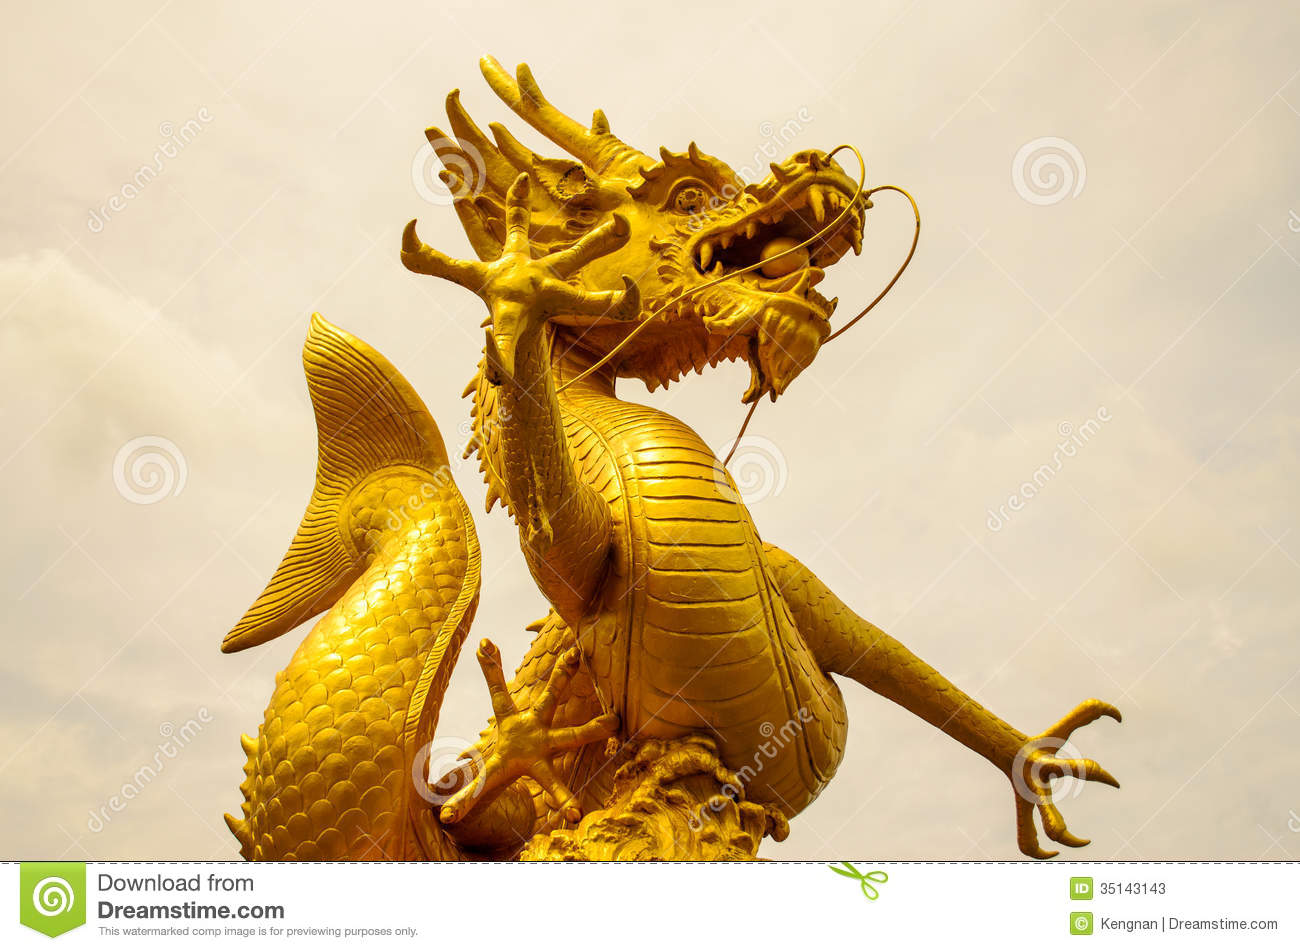 Gold Dragon Sculpture Figure Art China, Phuket Thailand.